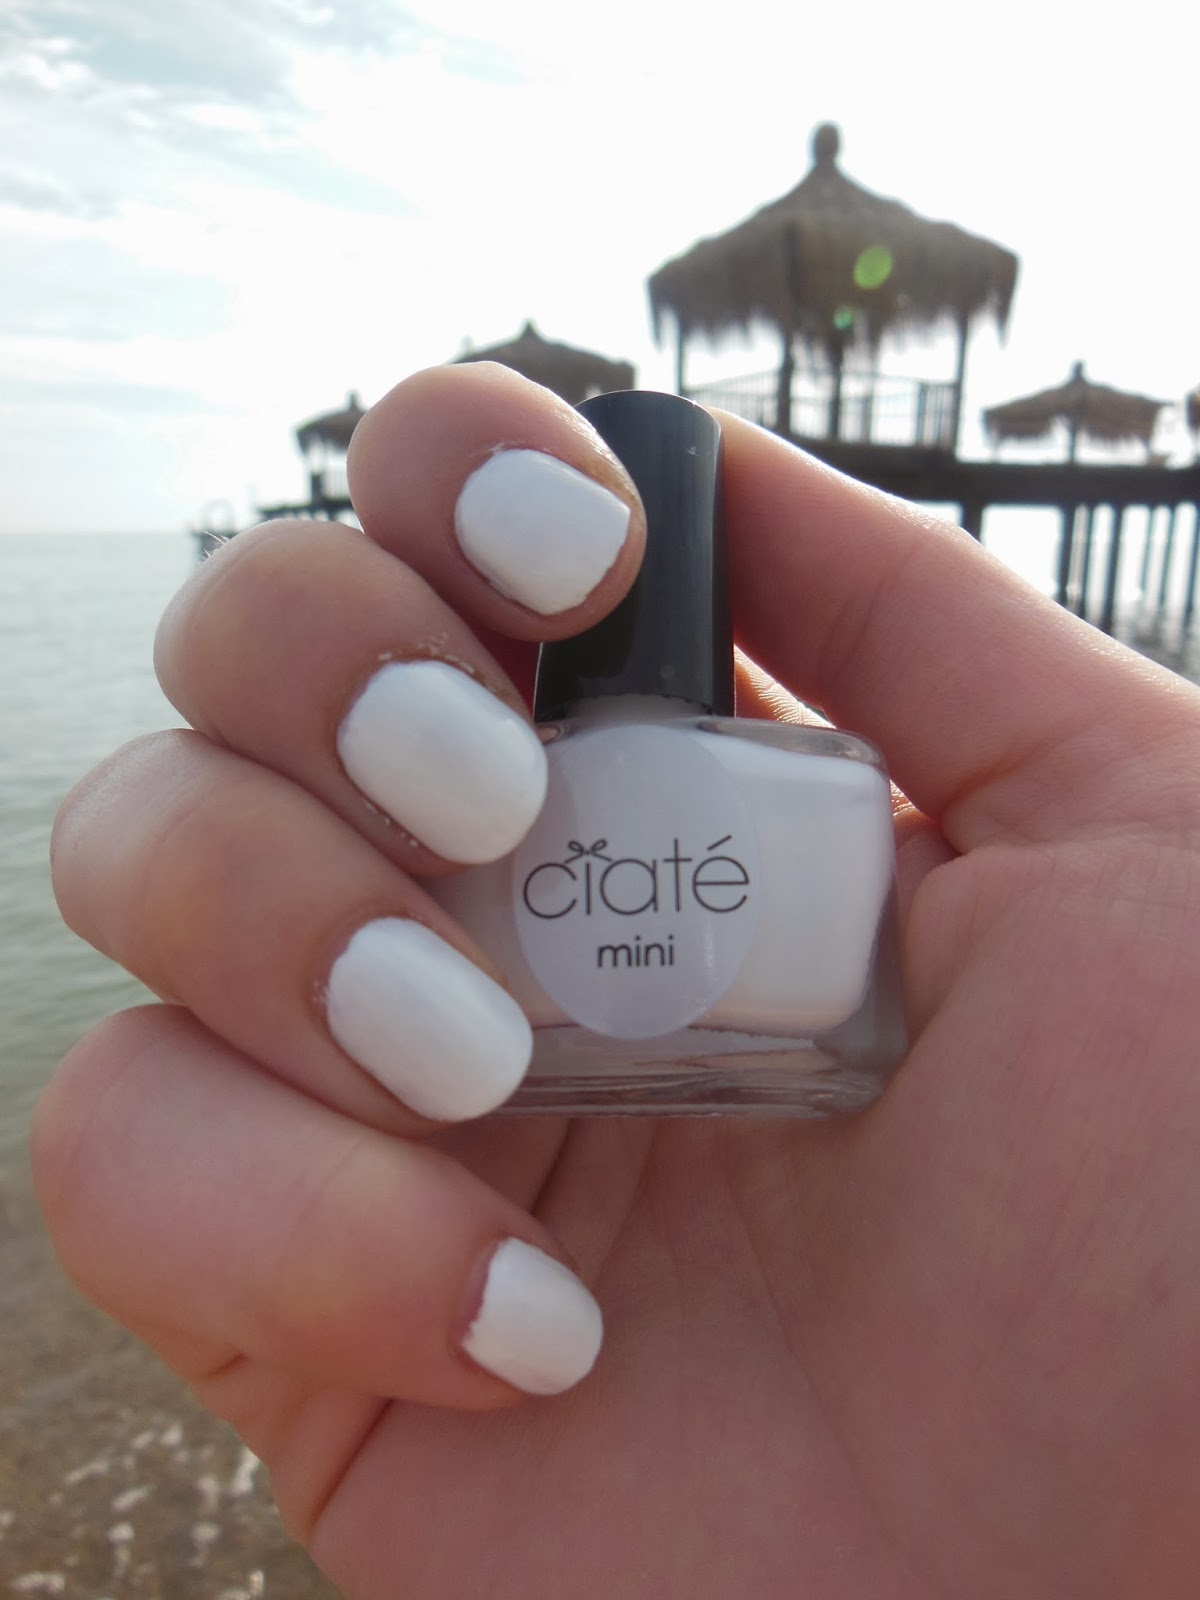 Dazzling Nails at the Beach | The Fashion Freak Diary